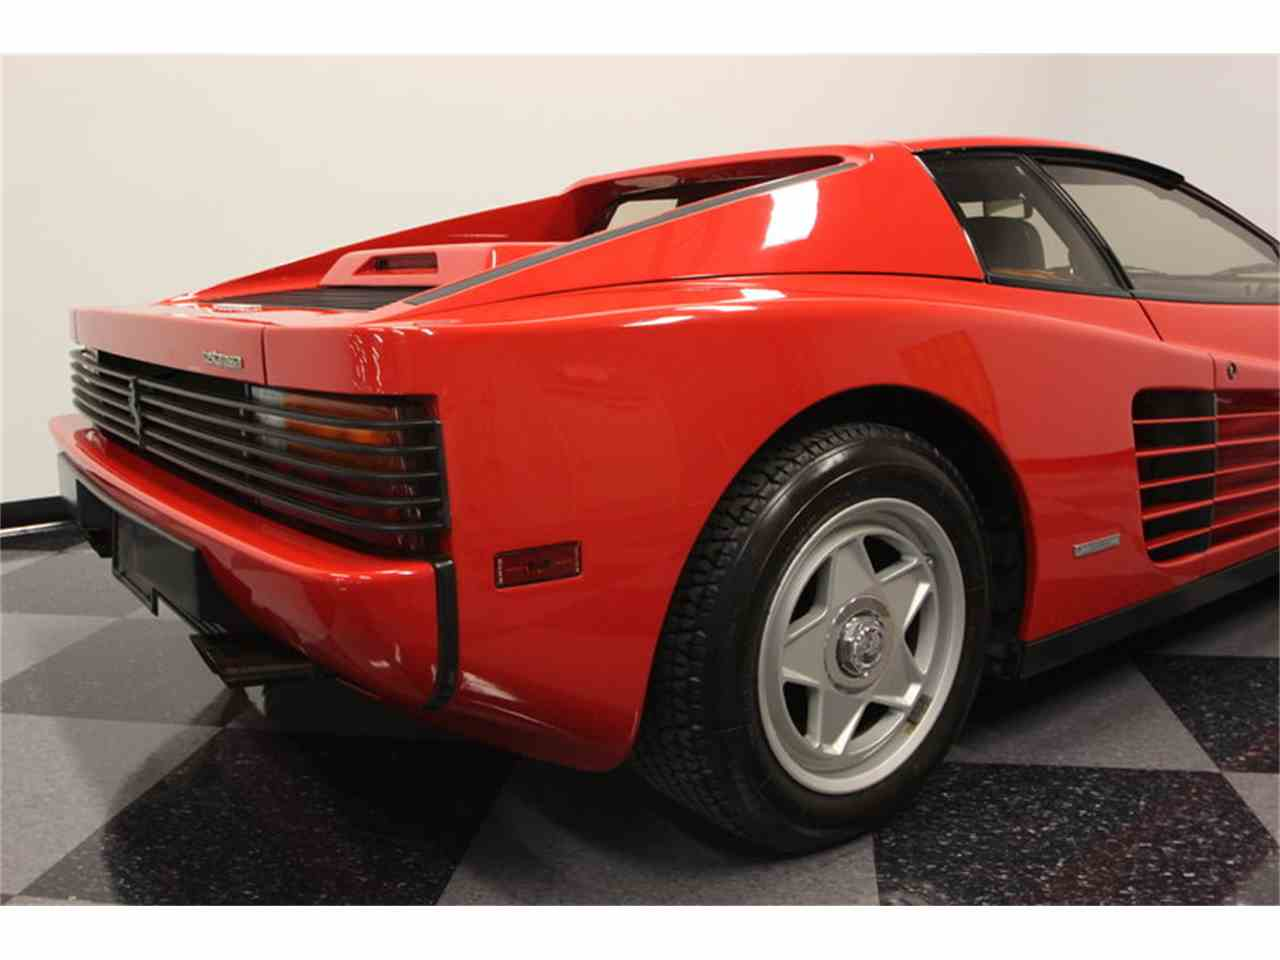 Large Picture of '86 Ferrari Testarossa located in Florida - $159,995.00 Offered by Streetside Classics - Tampa - FNNC